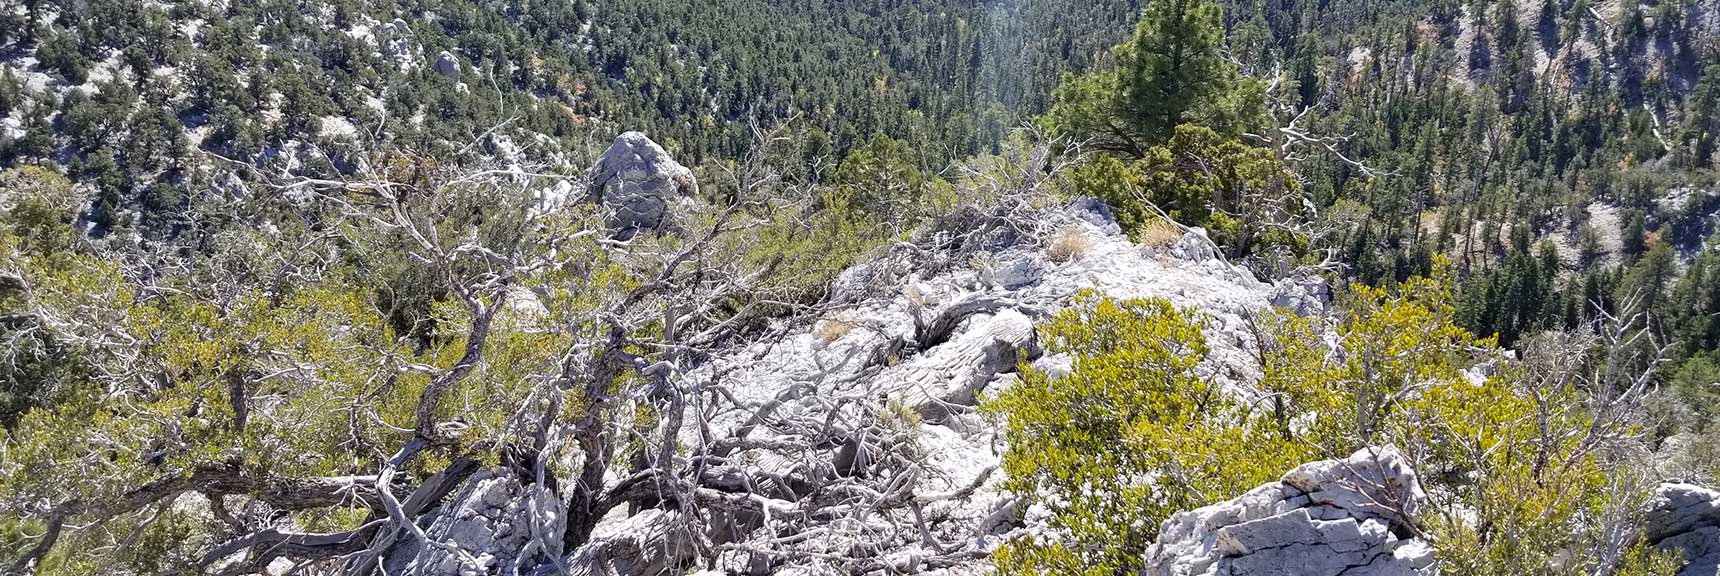 Navigating Rock Formations on the Approach Ridge to Cockscomb Peak and Ridge in Mt. Charleston Wilderness, Nevada